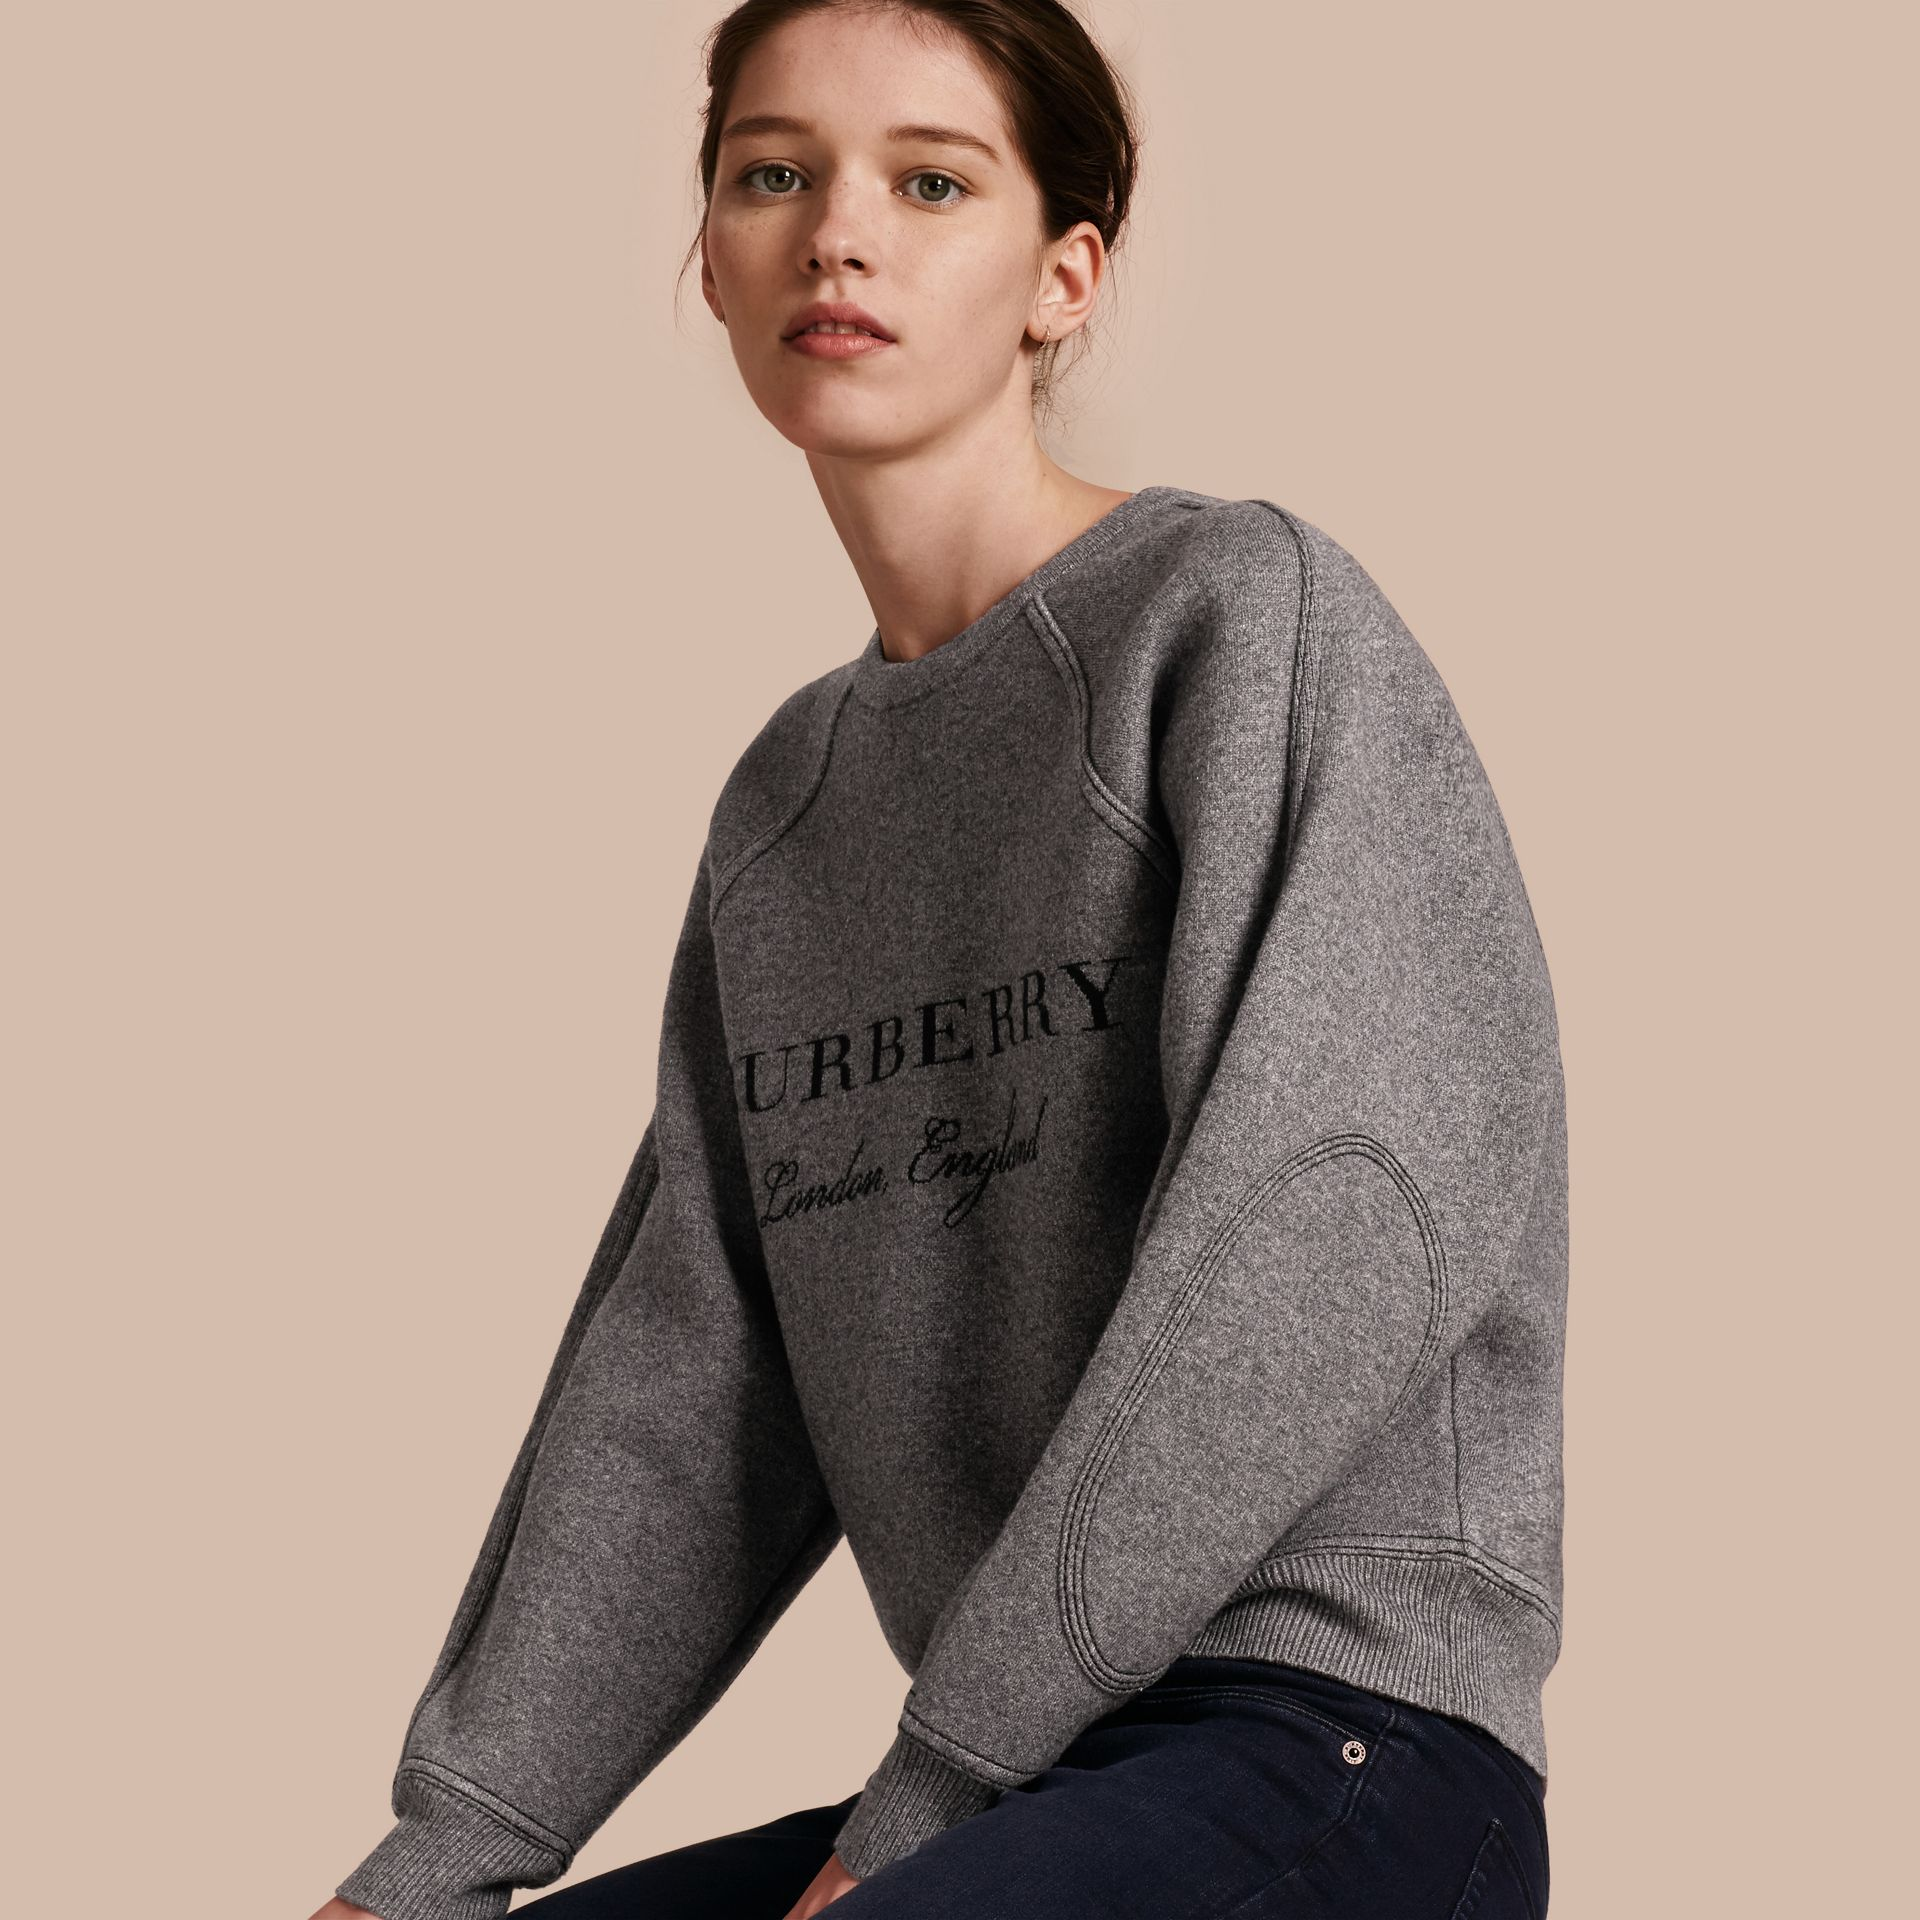 Topstitch Detail Wool Cashmere Blend Sweater in Mid Grey Melange - Women | Burberry Canada - gallery image 1